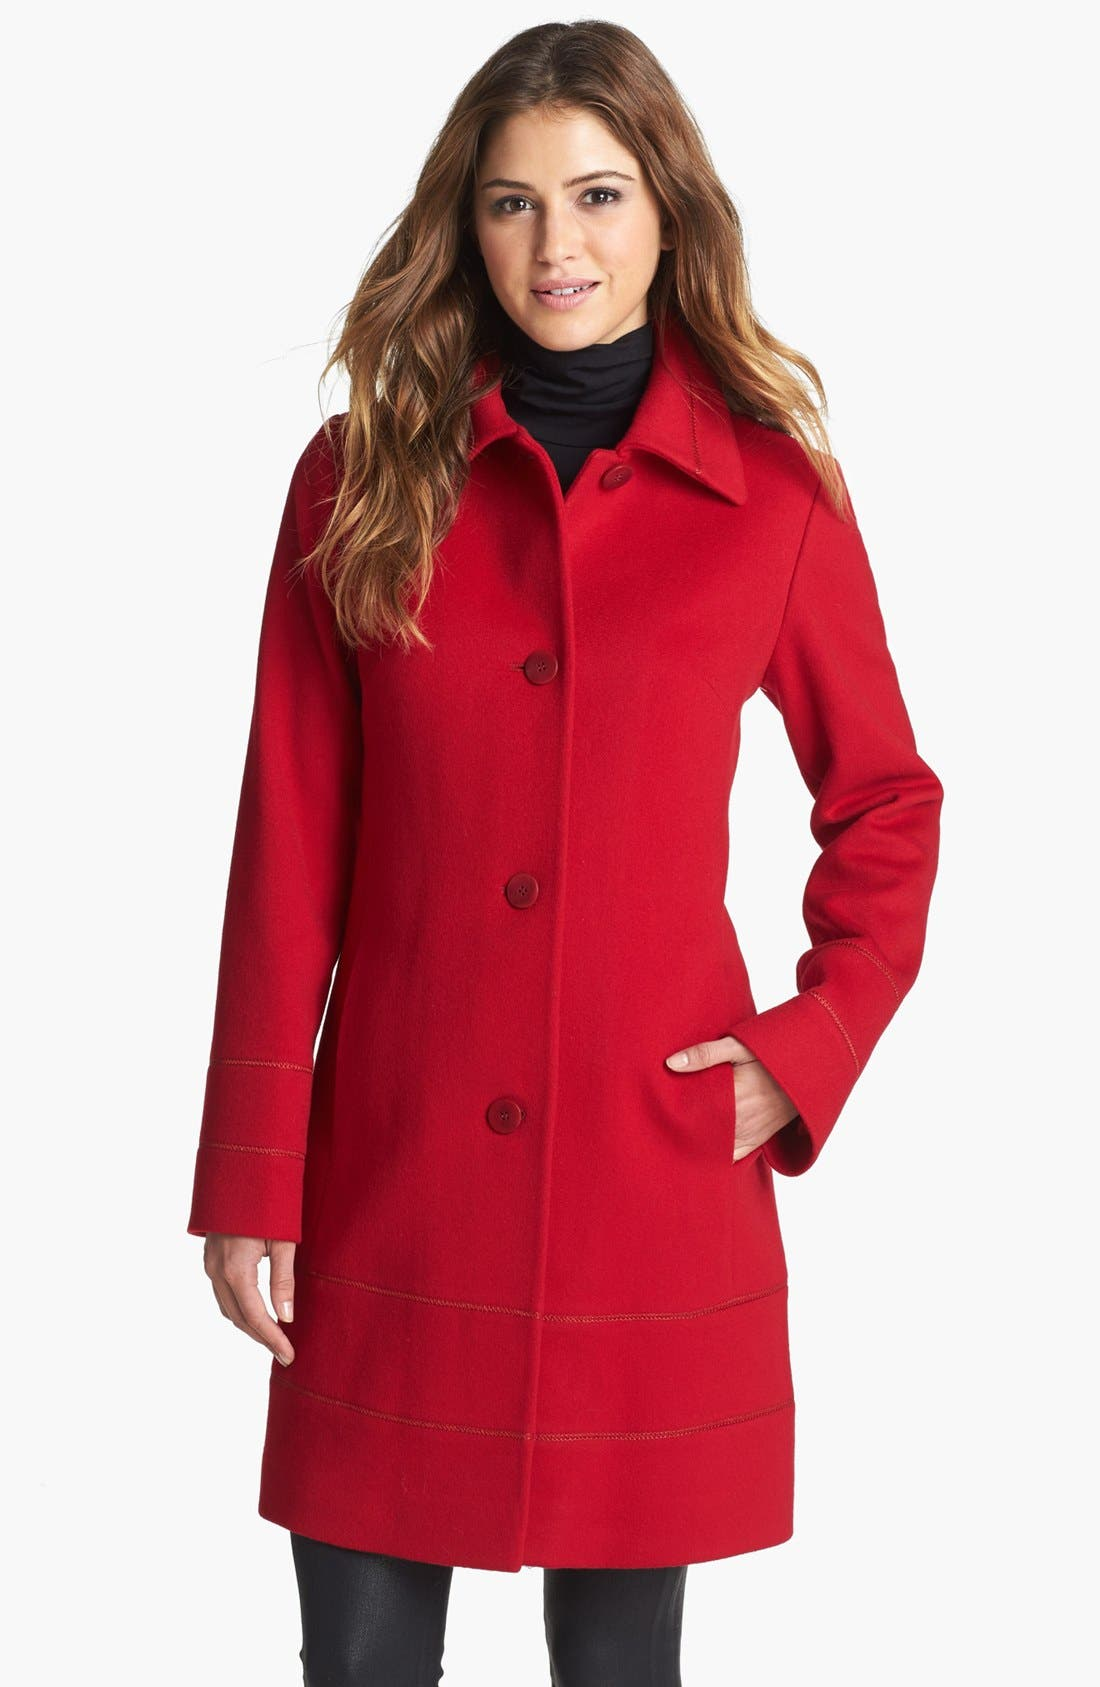 Main Image - Fleurette Stitch Trim Loro Piana Wool Coat (Petite)